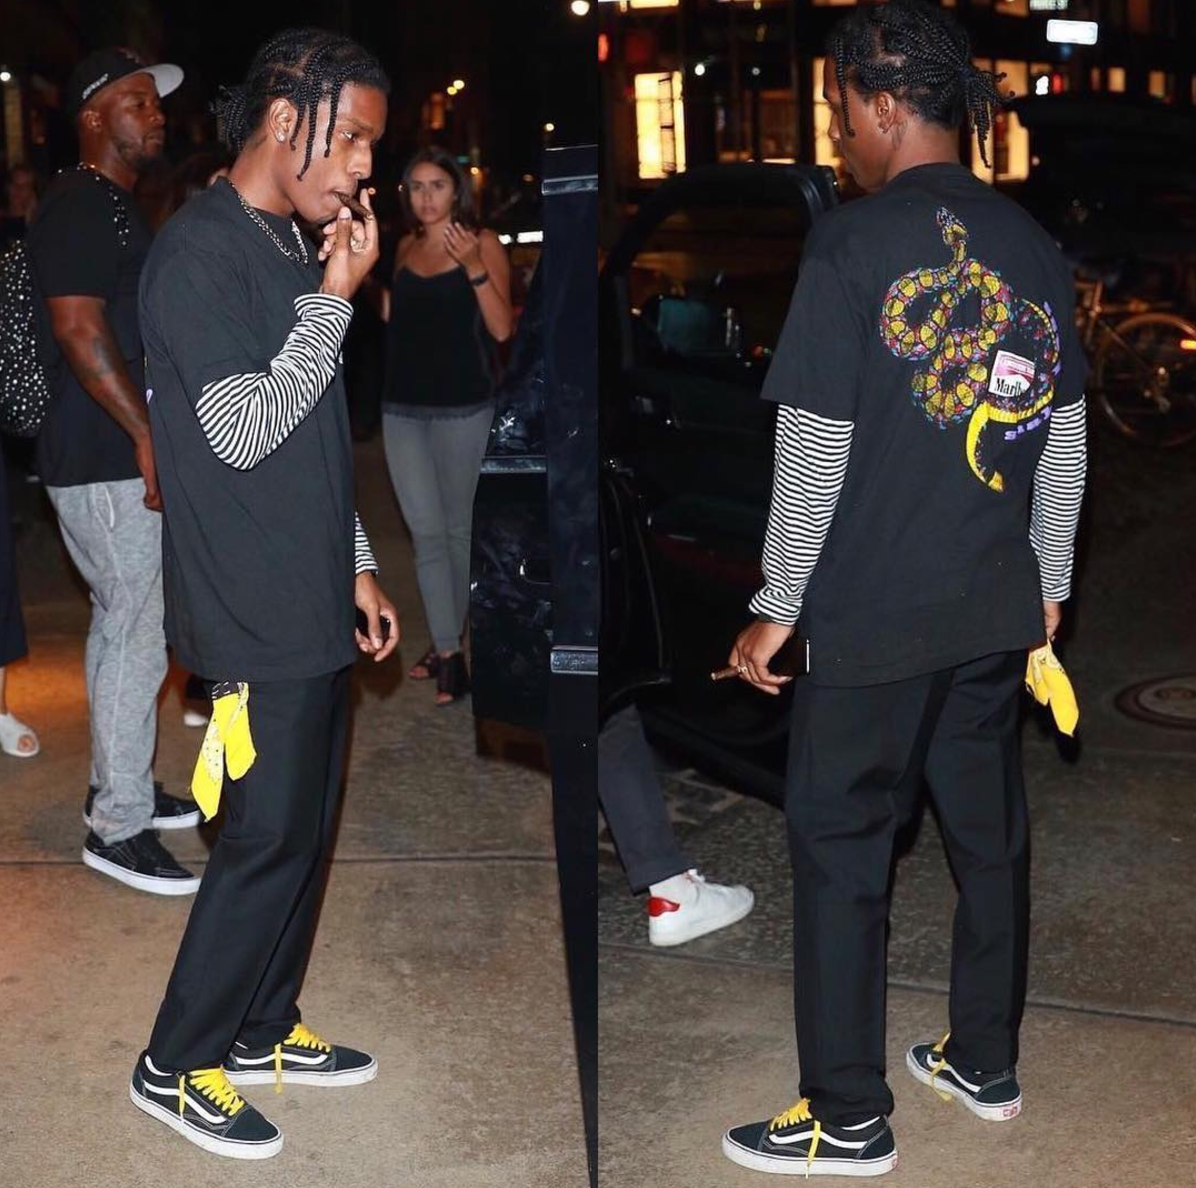 SPOTTED: A$AP Rocky In Marlboro T-Shirt And Vans Sneakers